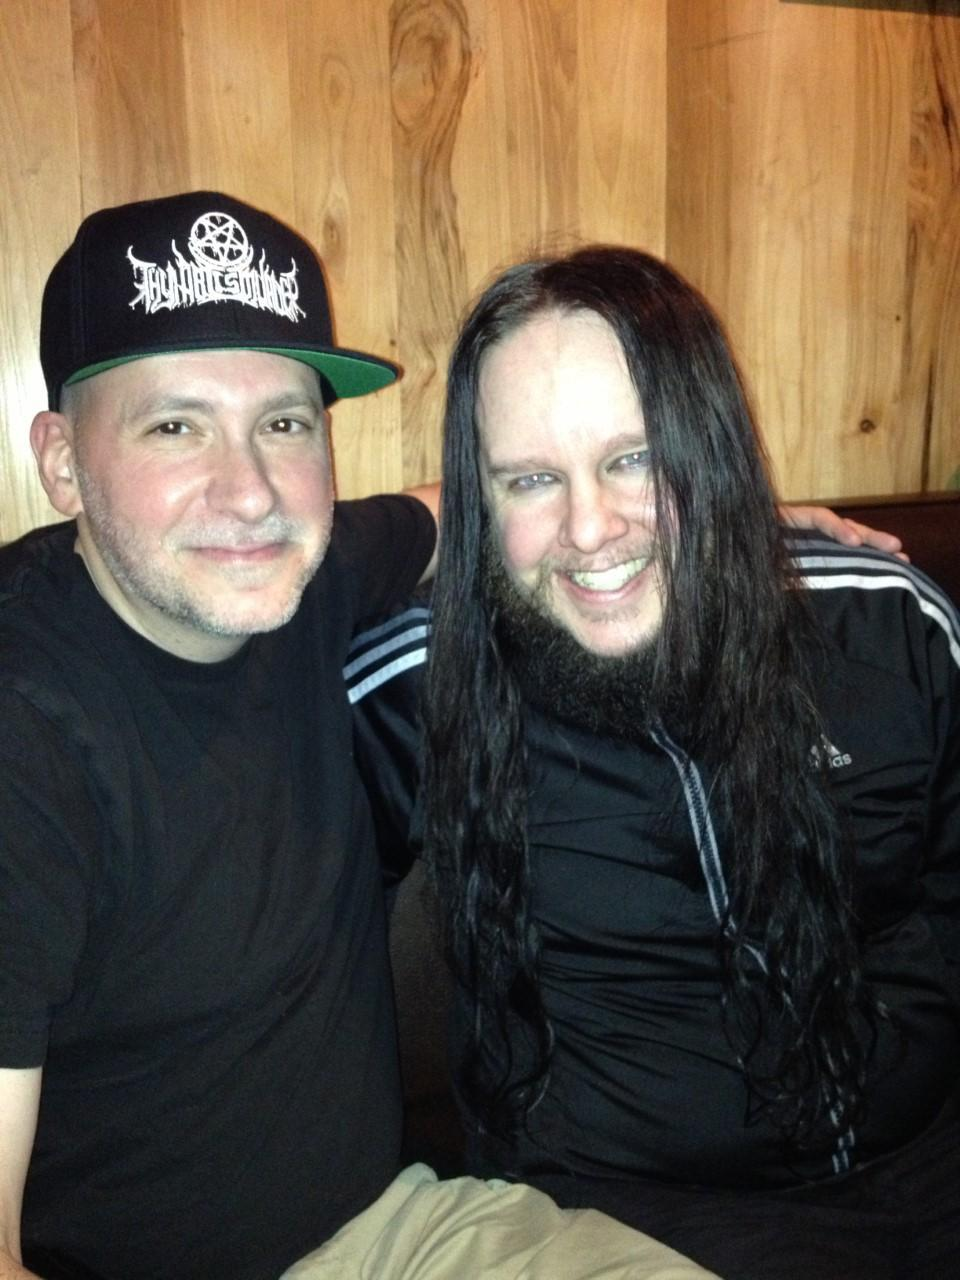 Joey Jordison (right) with Monte Conner, 2013 - Credit: Courtesy Monte Conner